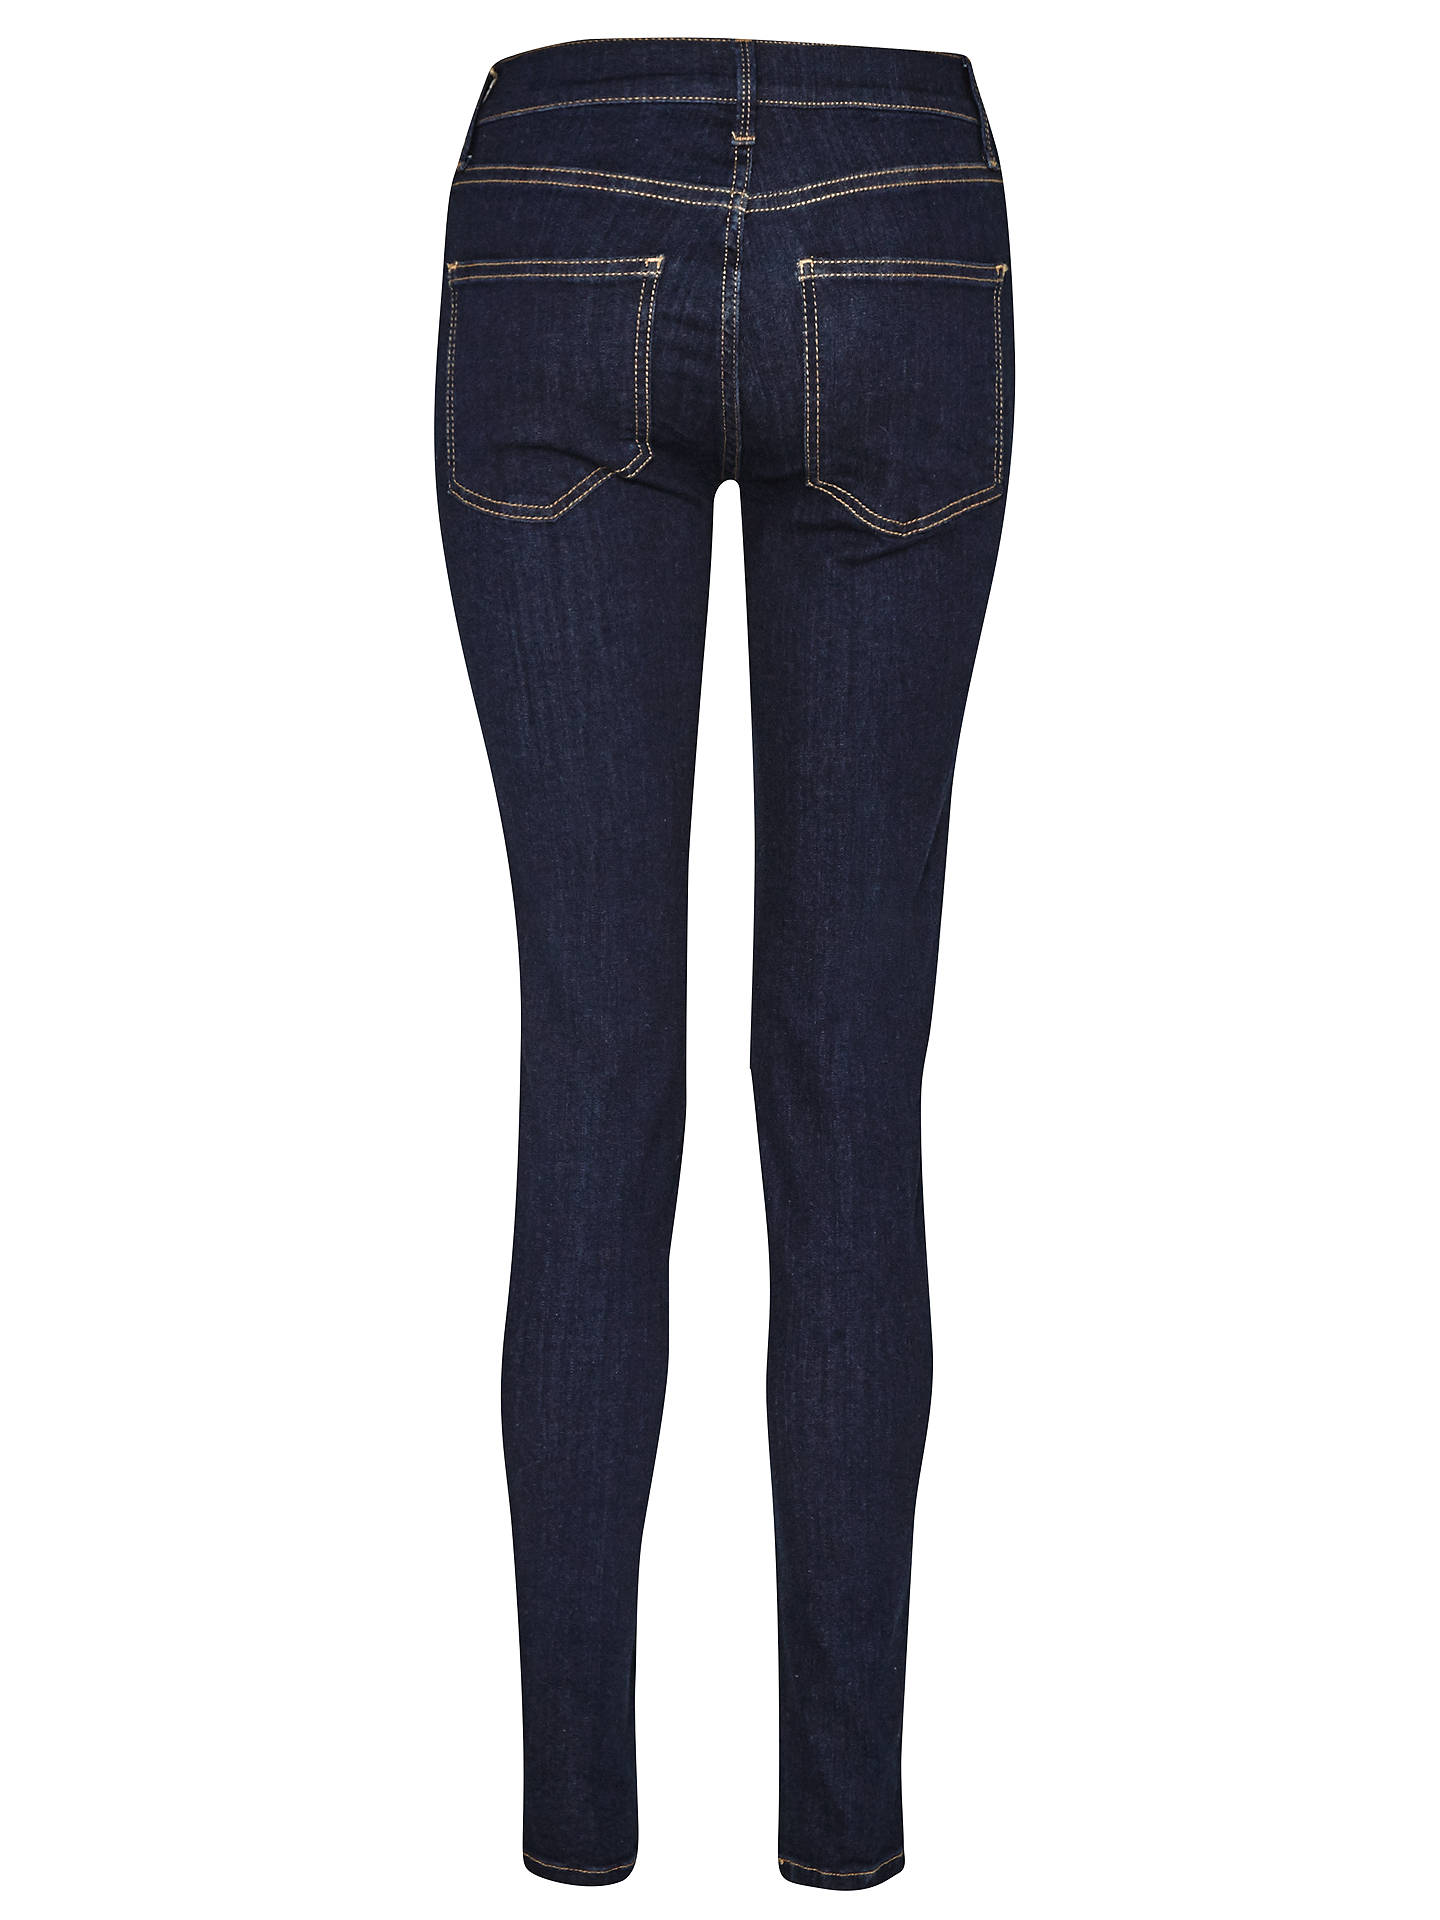 Buy French Connection Skinny Stretch Rebound Denim Jeans, Rinse, 6 Online at johnlewis.com